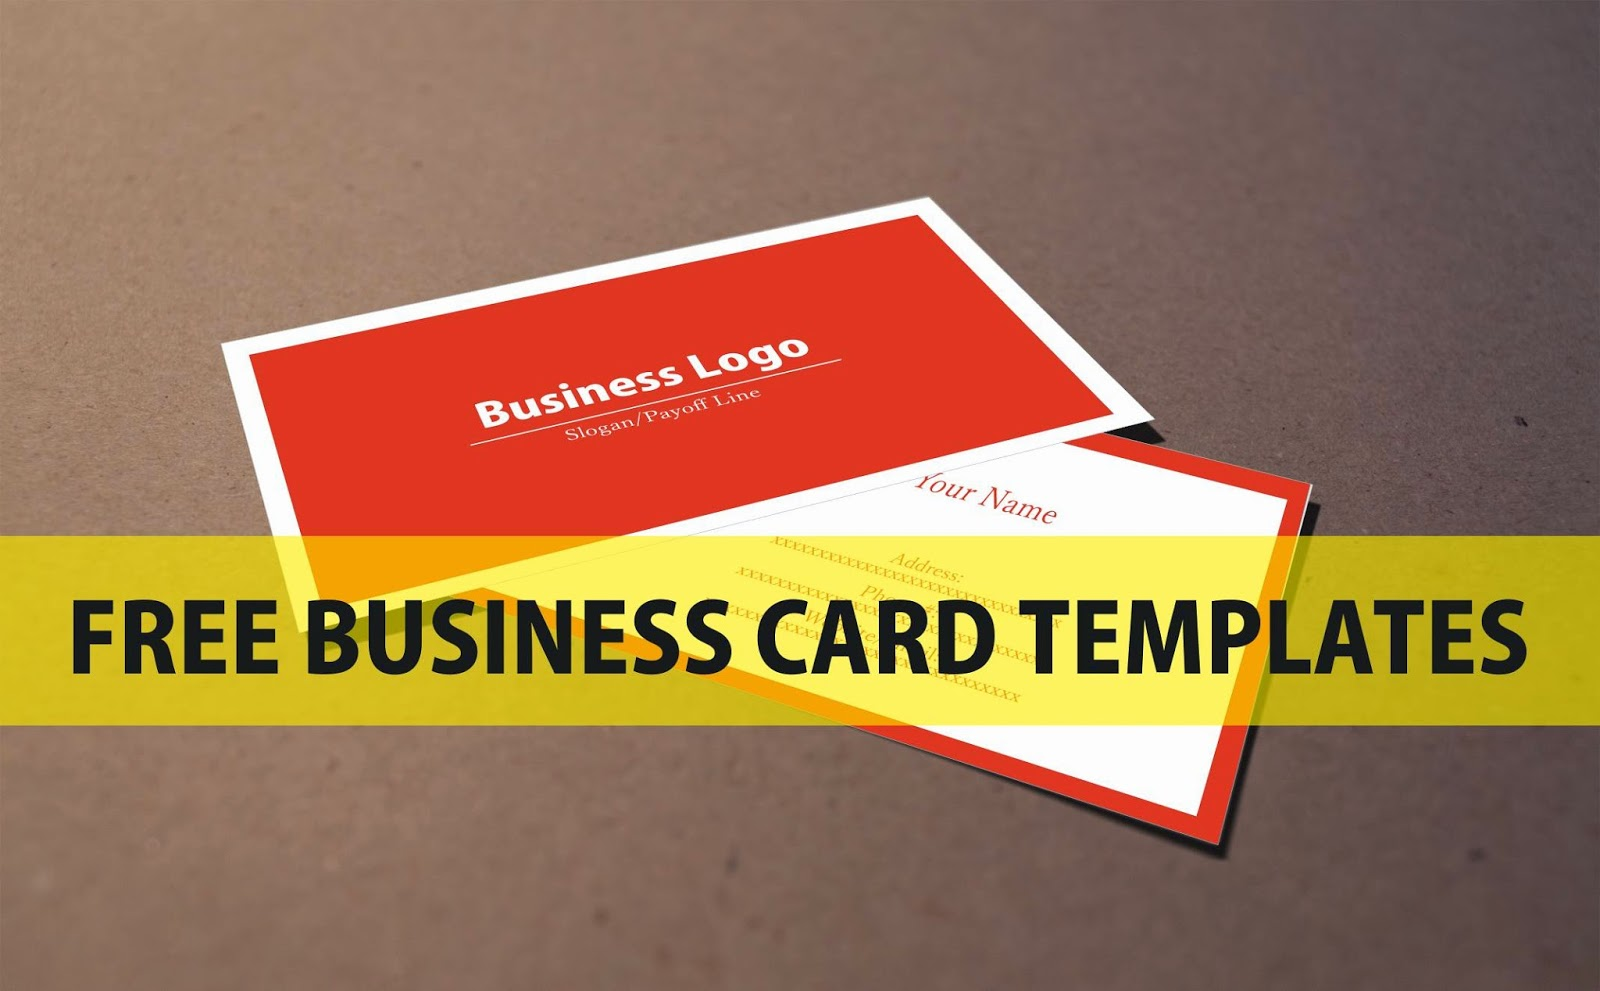 Free business card template download coreldraw file a graphic free business card template download coreldraw file friedricerecipe